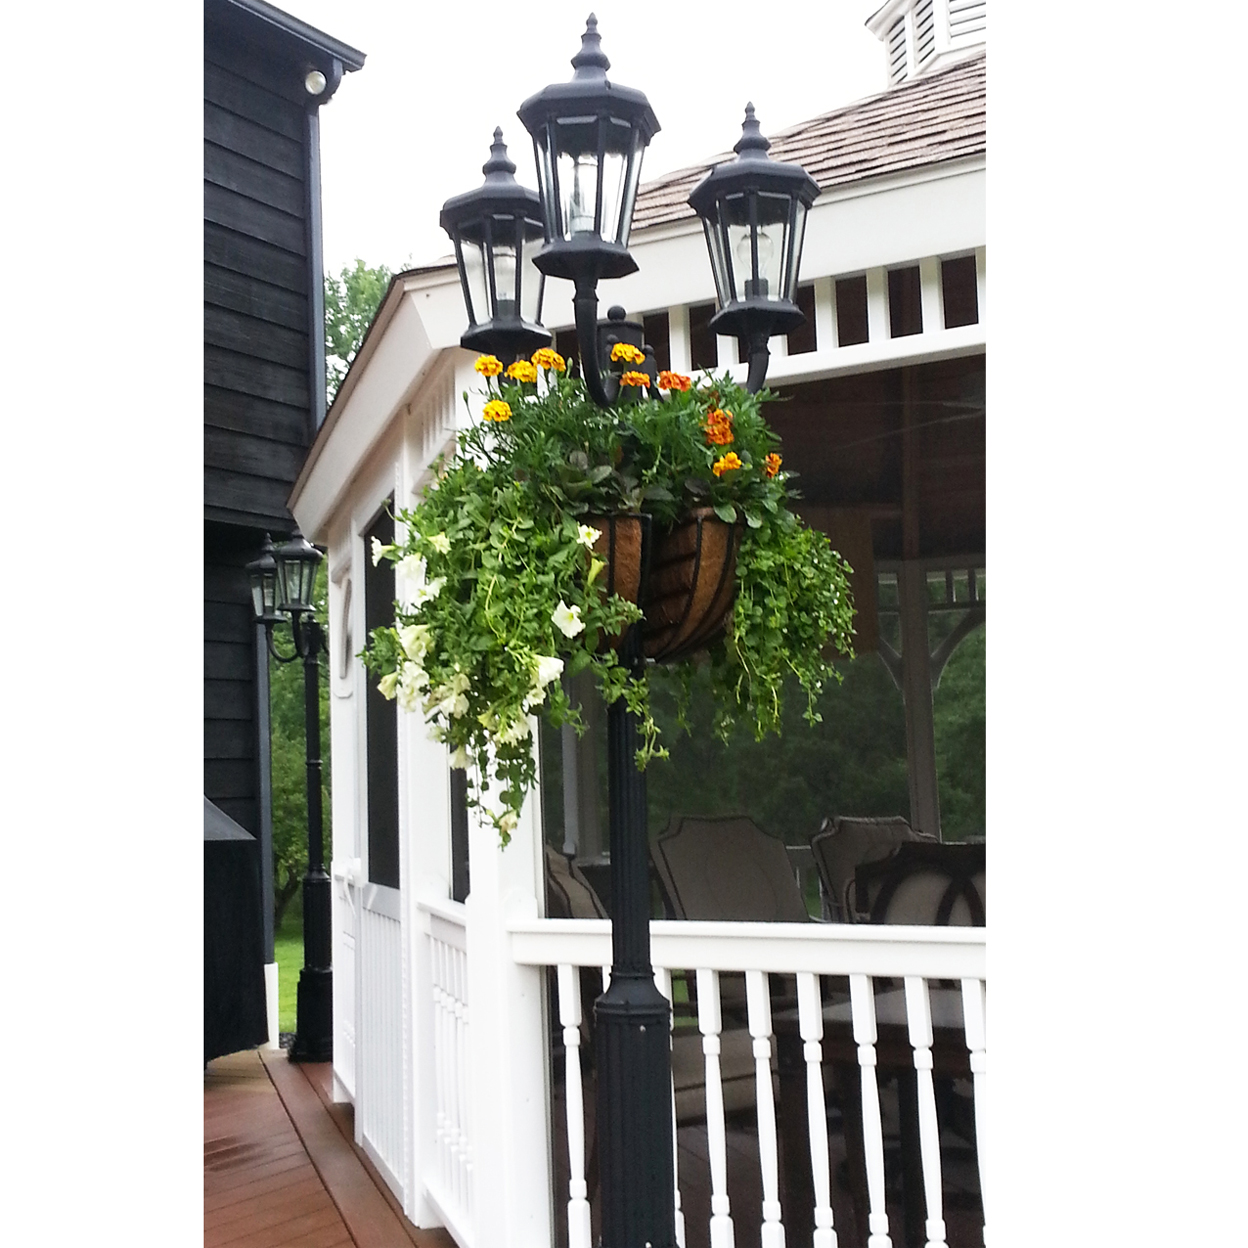 16 LAMPPOST HAYRACK-EURO CLASSIC W/LINERS (RESIDENTIAL)